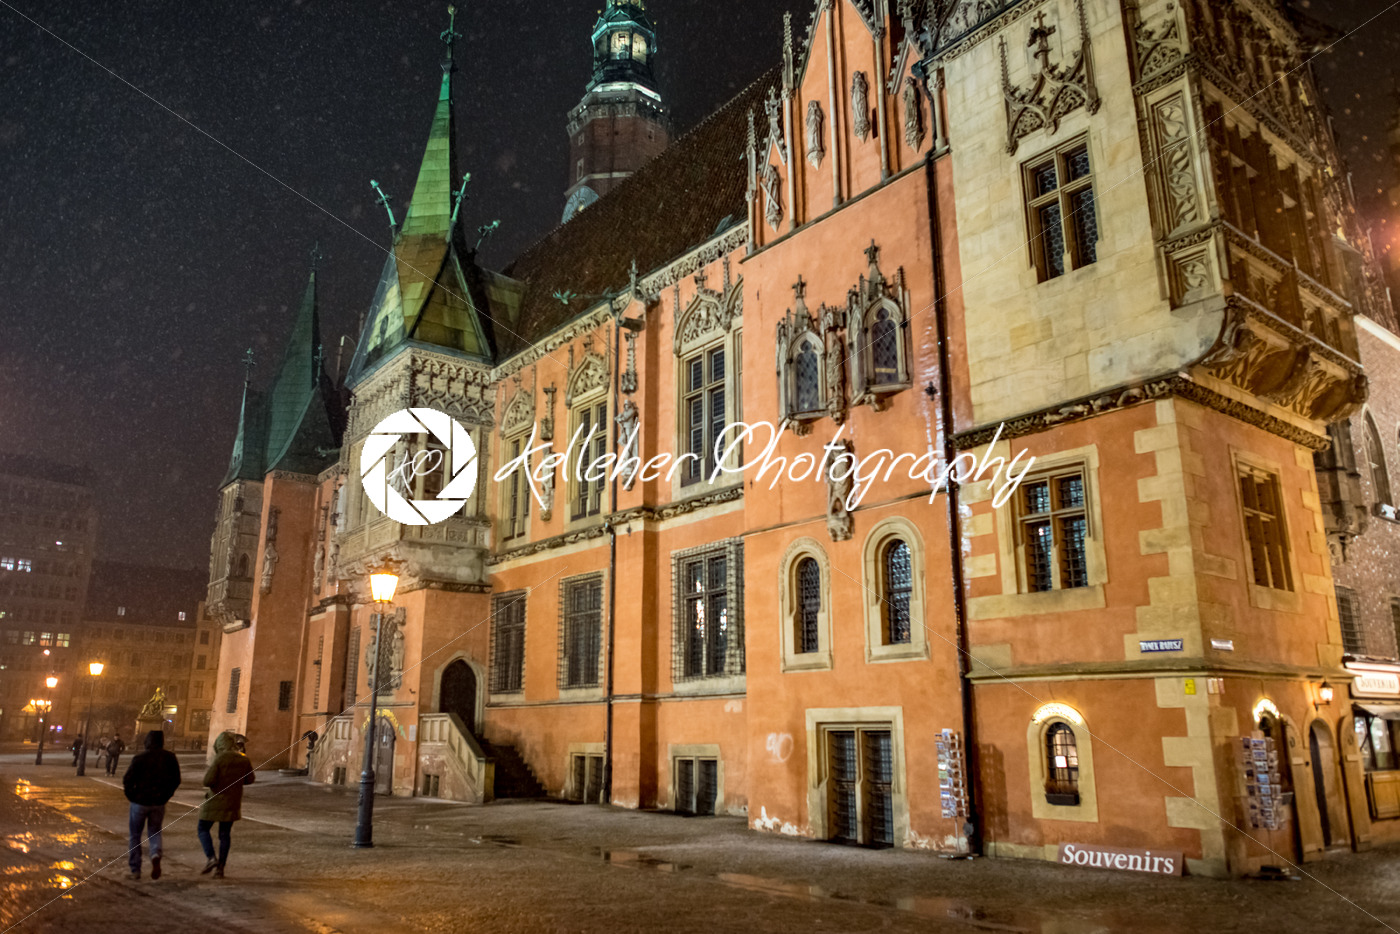 Wroclaw, Poland – March 6, 2018: Wroclaw Town Hall at night in historic capital of Silesia, Poland, Europe. - Kelleher Photography Store